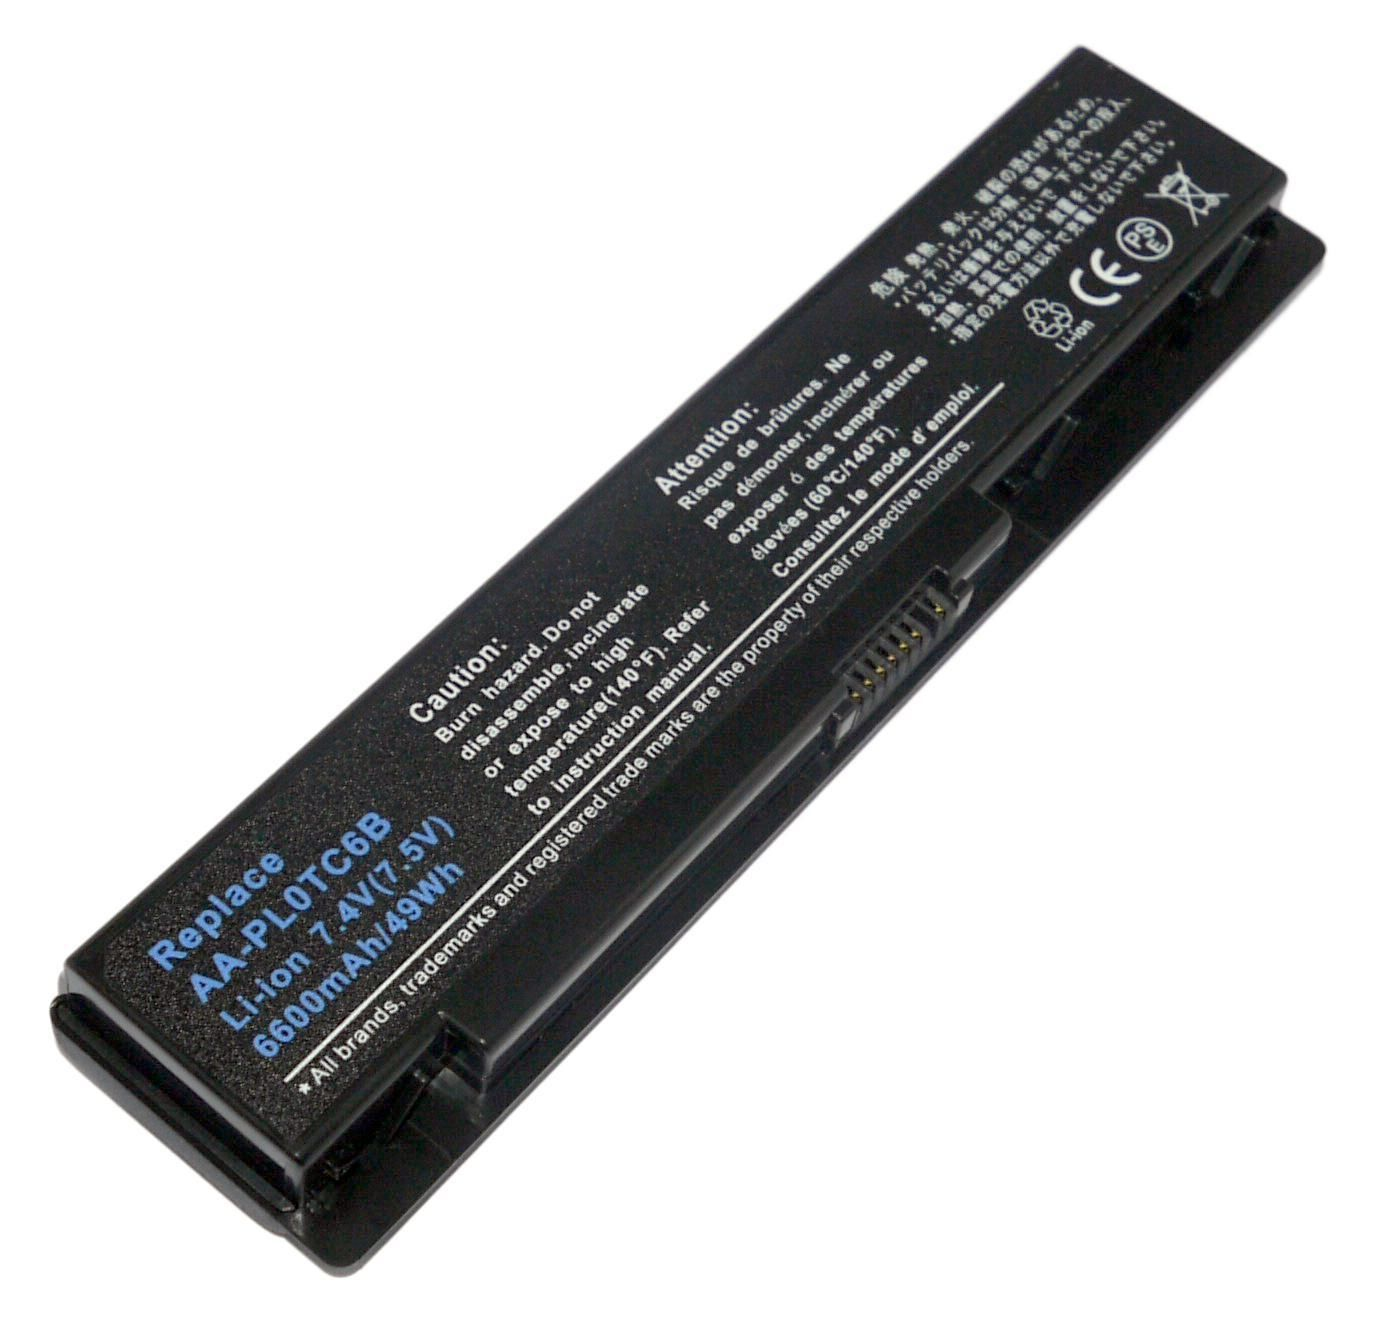 Replacement Samsung N310-KA06 Battery